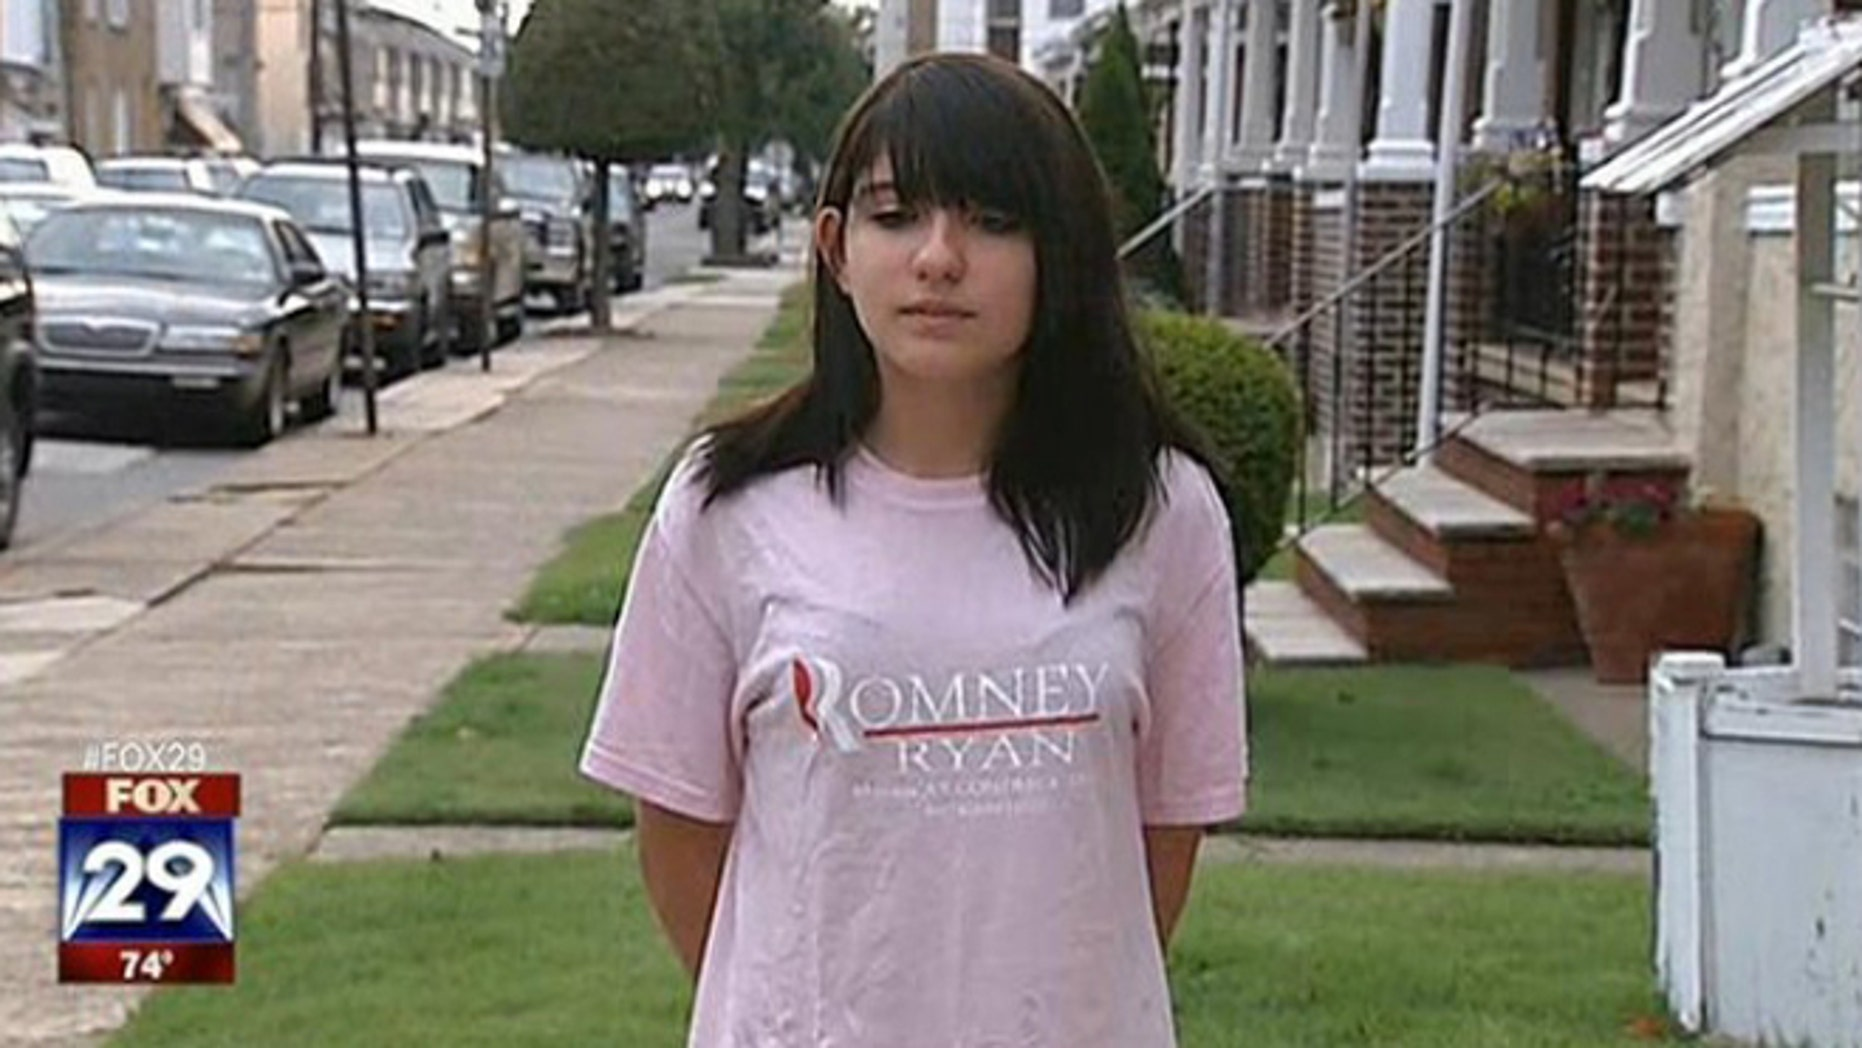 Samantha Pawlucy's lawsuit claims her school district let other students harass her over her Romney T-shirt.